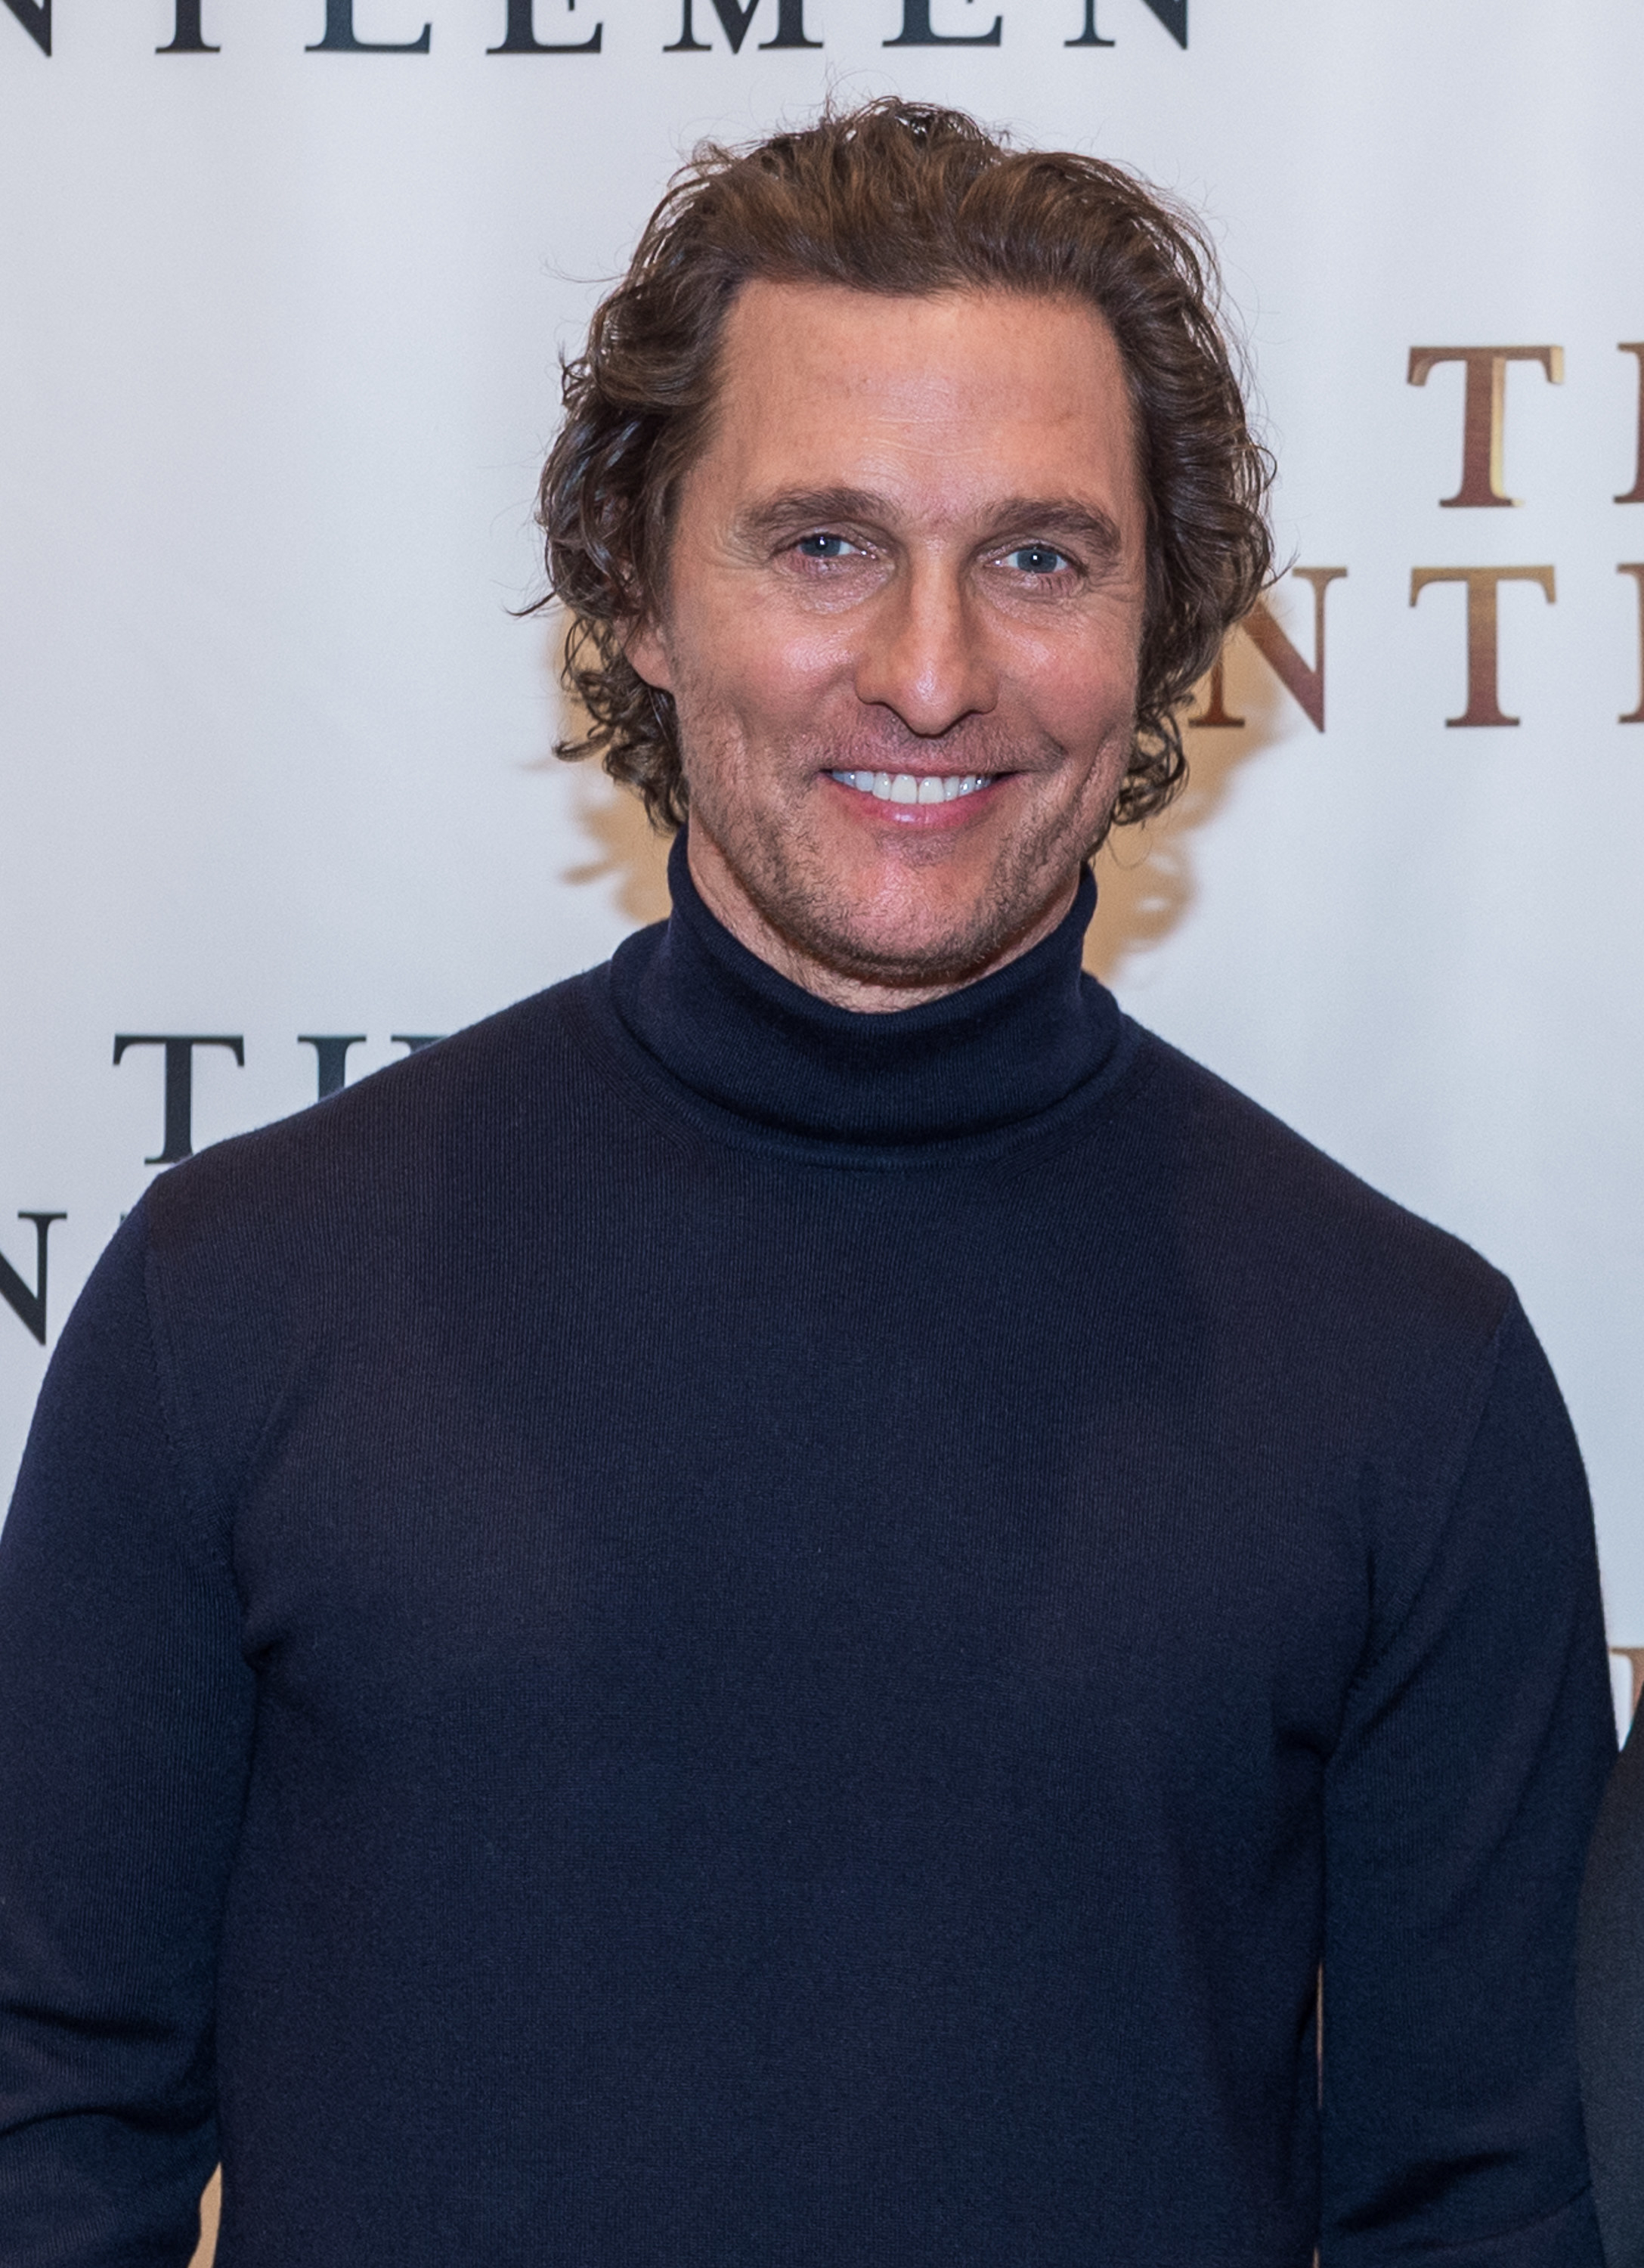 """Matthew McConaughey attends """"The Gentlemen"""" New York City Photo Call at the Whitby Hotel on January 11, 2020 in New York City."""